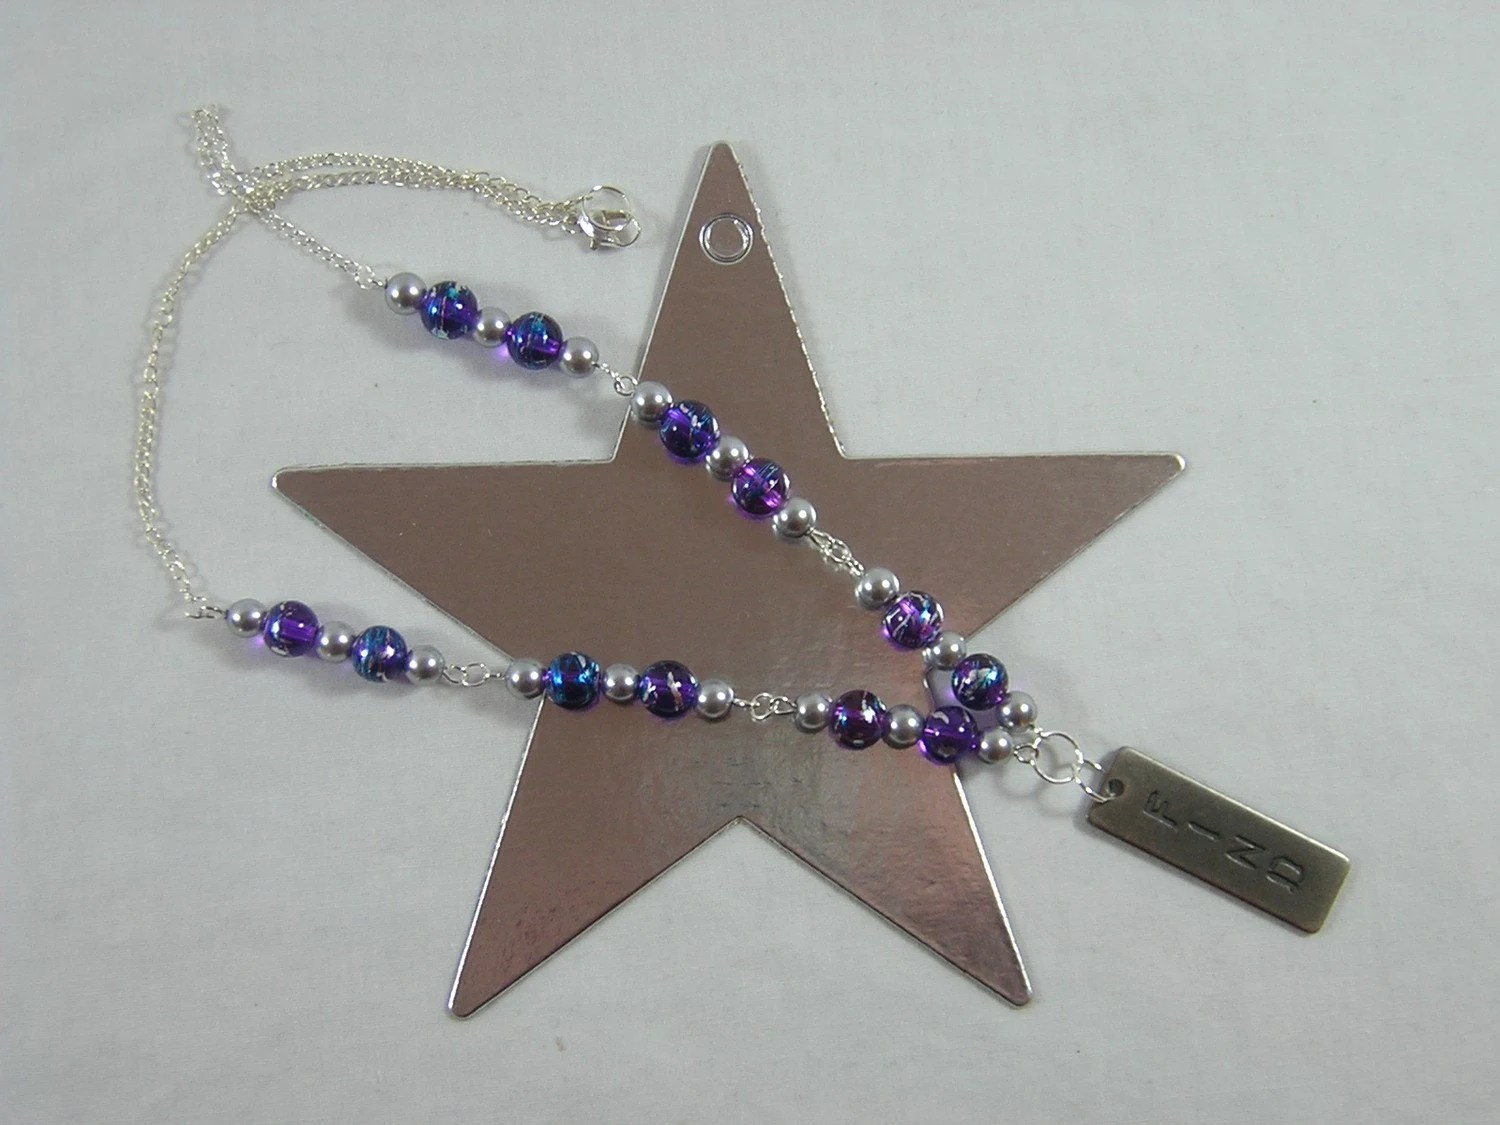 Purple and Silver FIND Necklace - Handmade by Rewondered D225N-99244 - $23.95